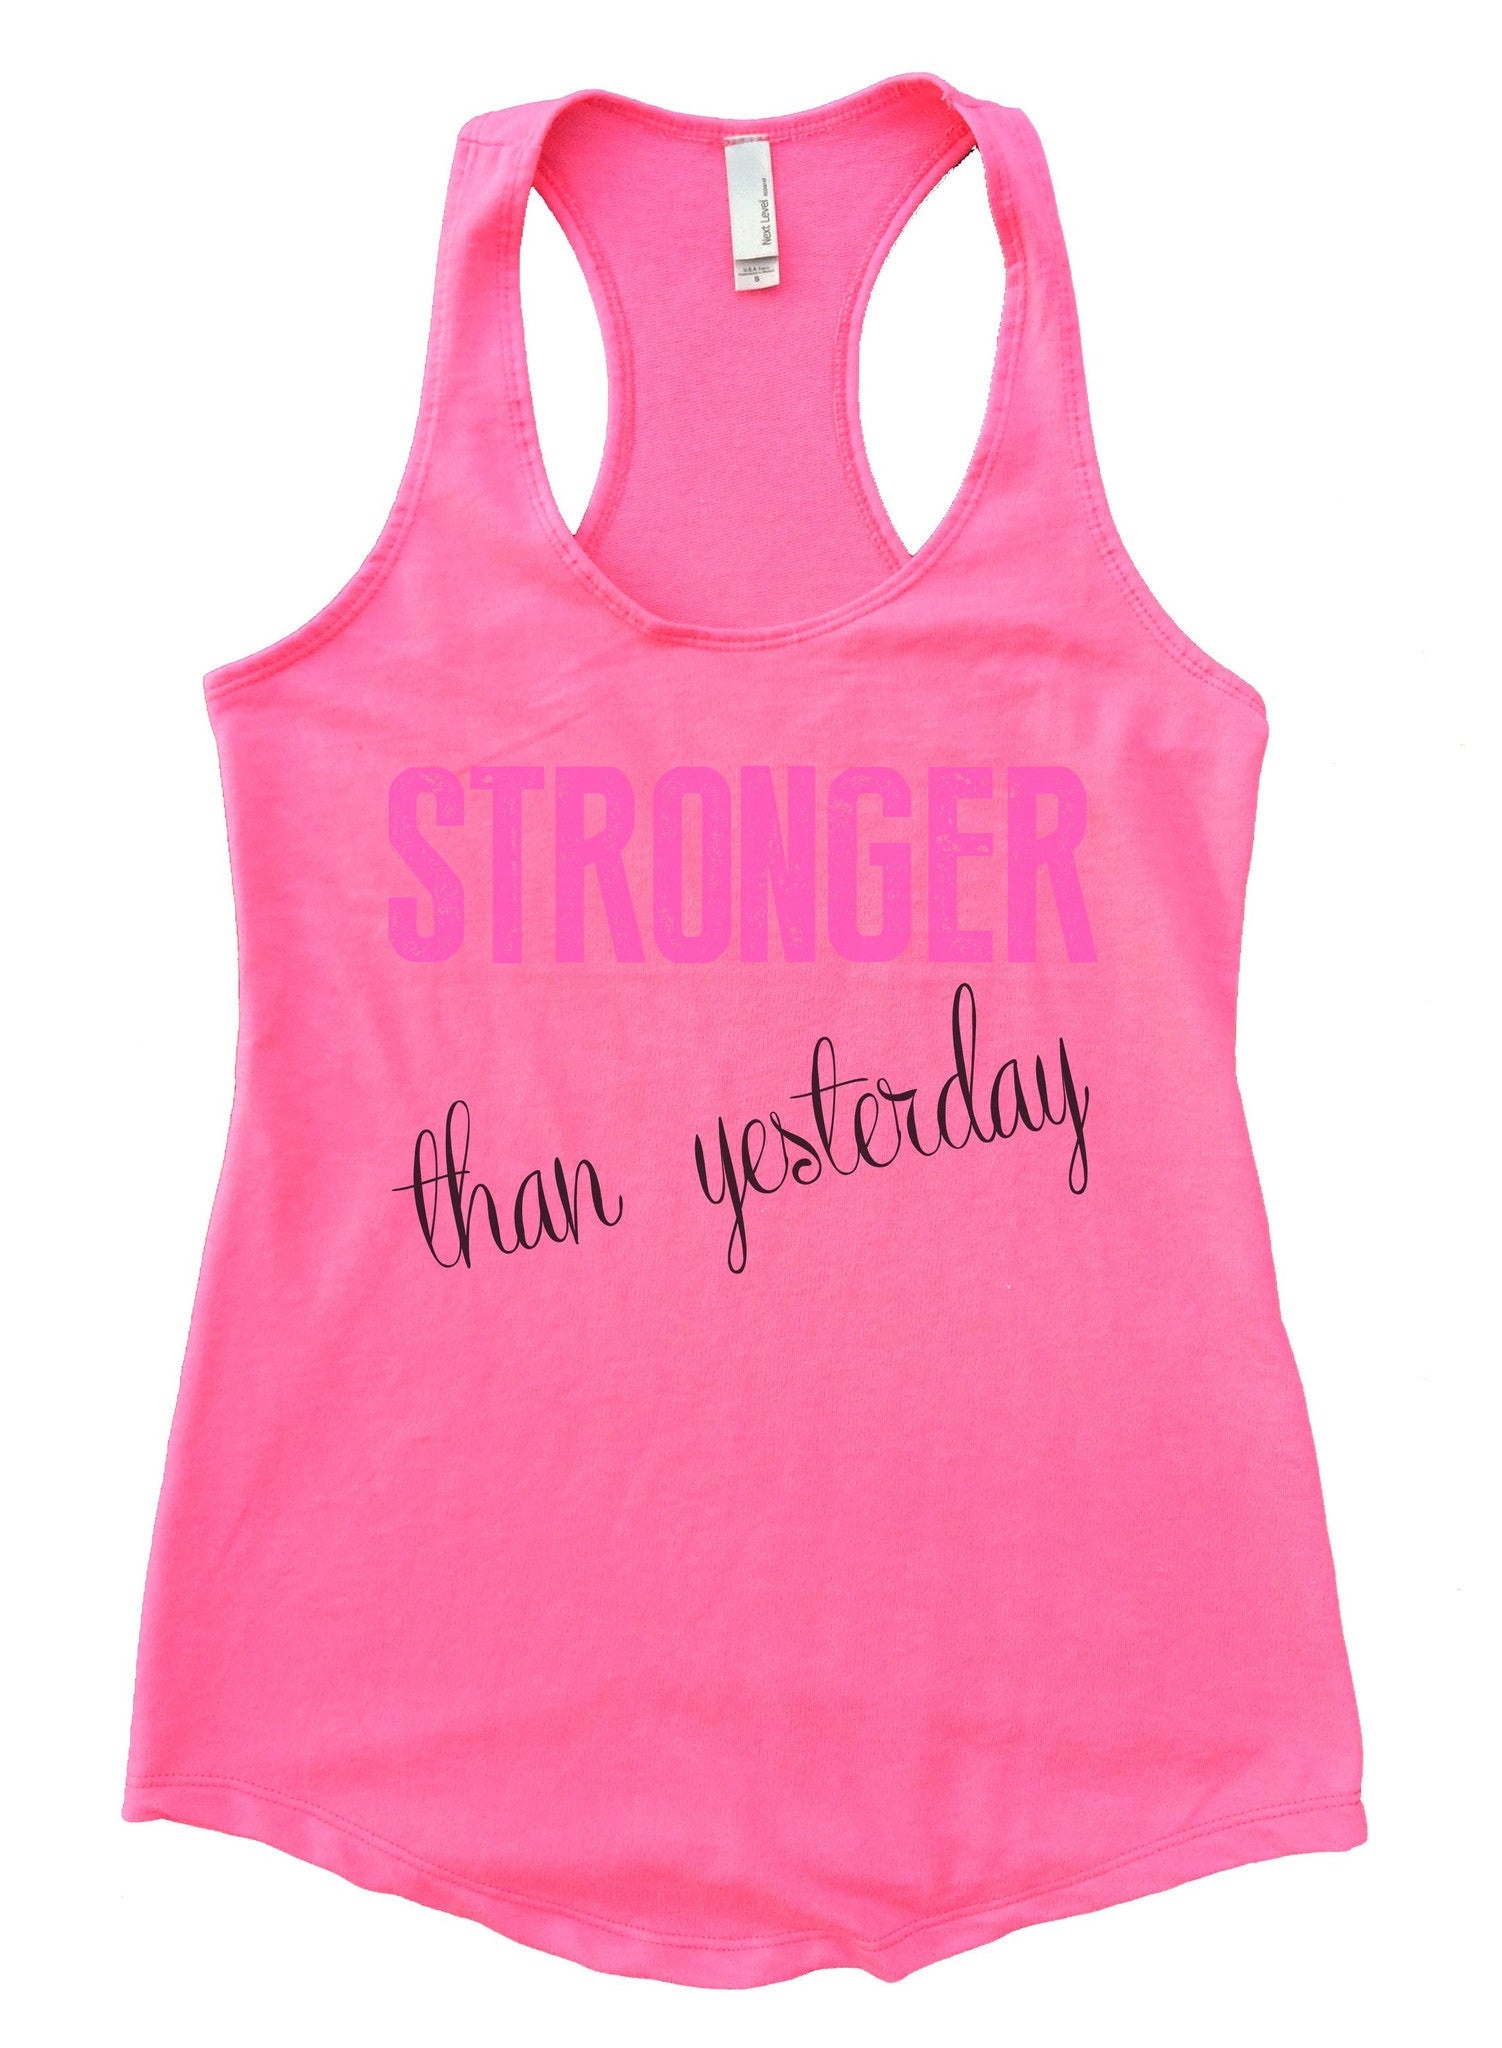 Stronger Than Yesterday Womens Workout Tank Top F768 - Funny Shirts Tank Tops Burnouts and Triblends  - 3